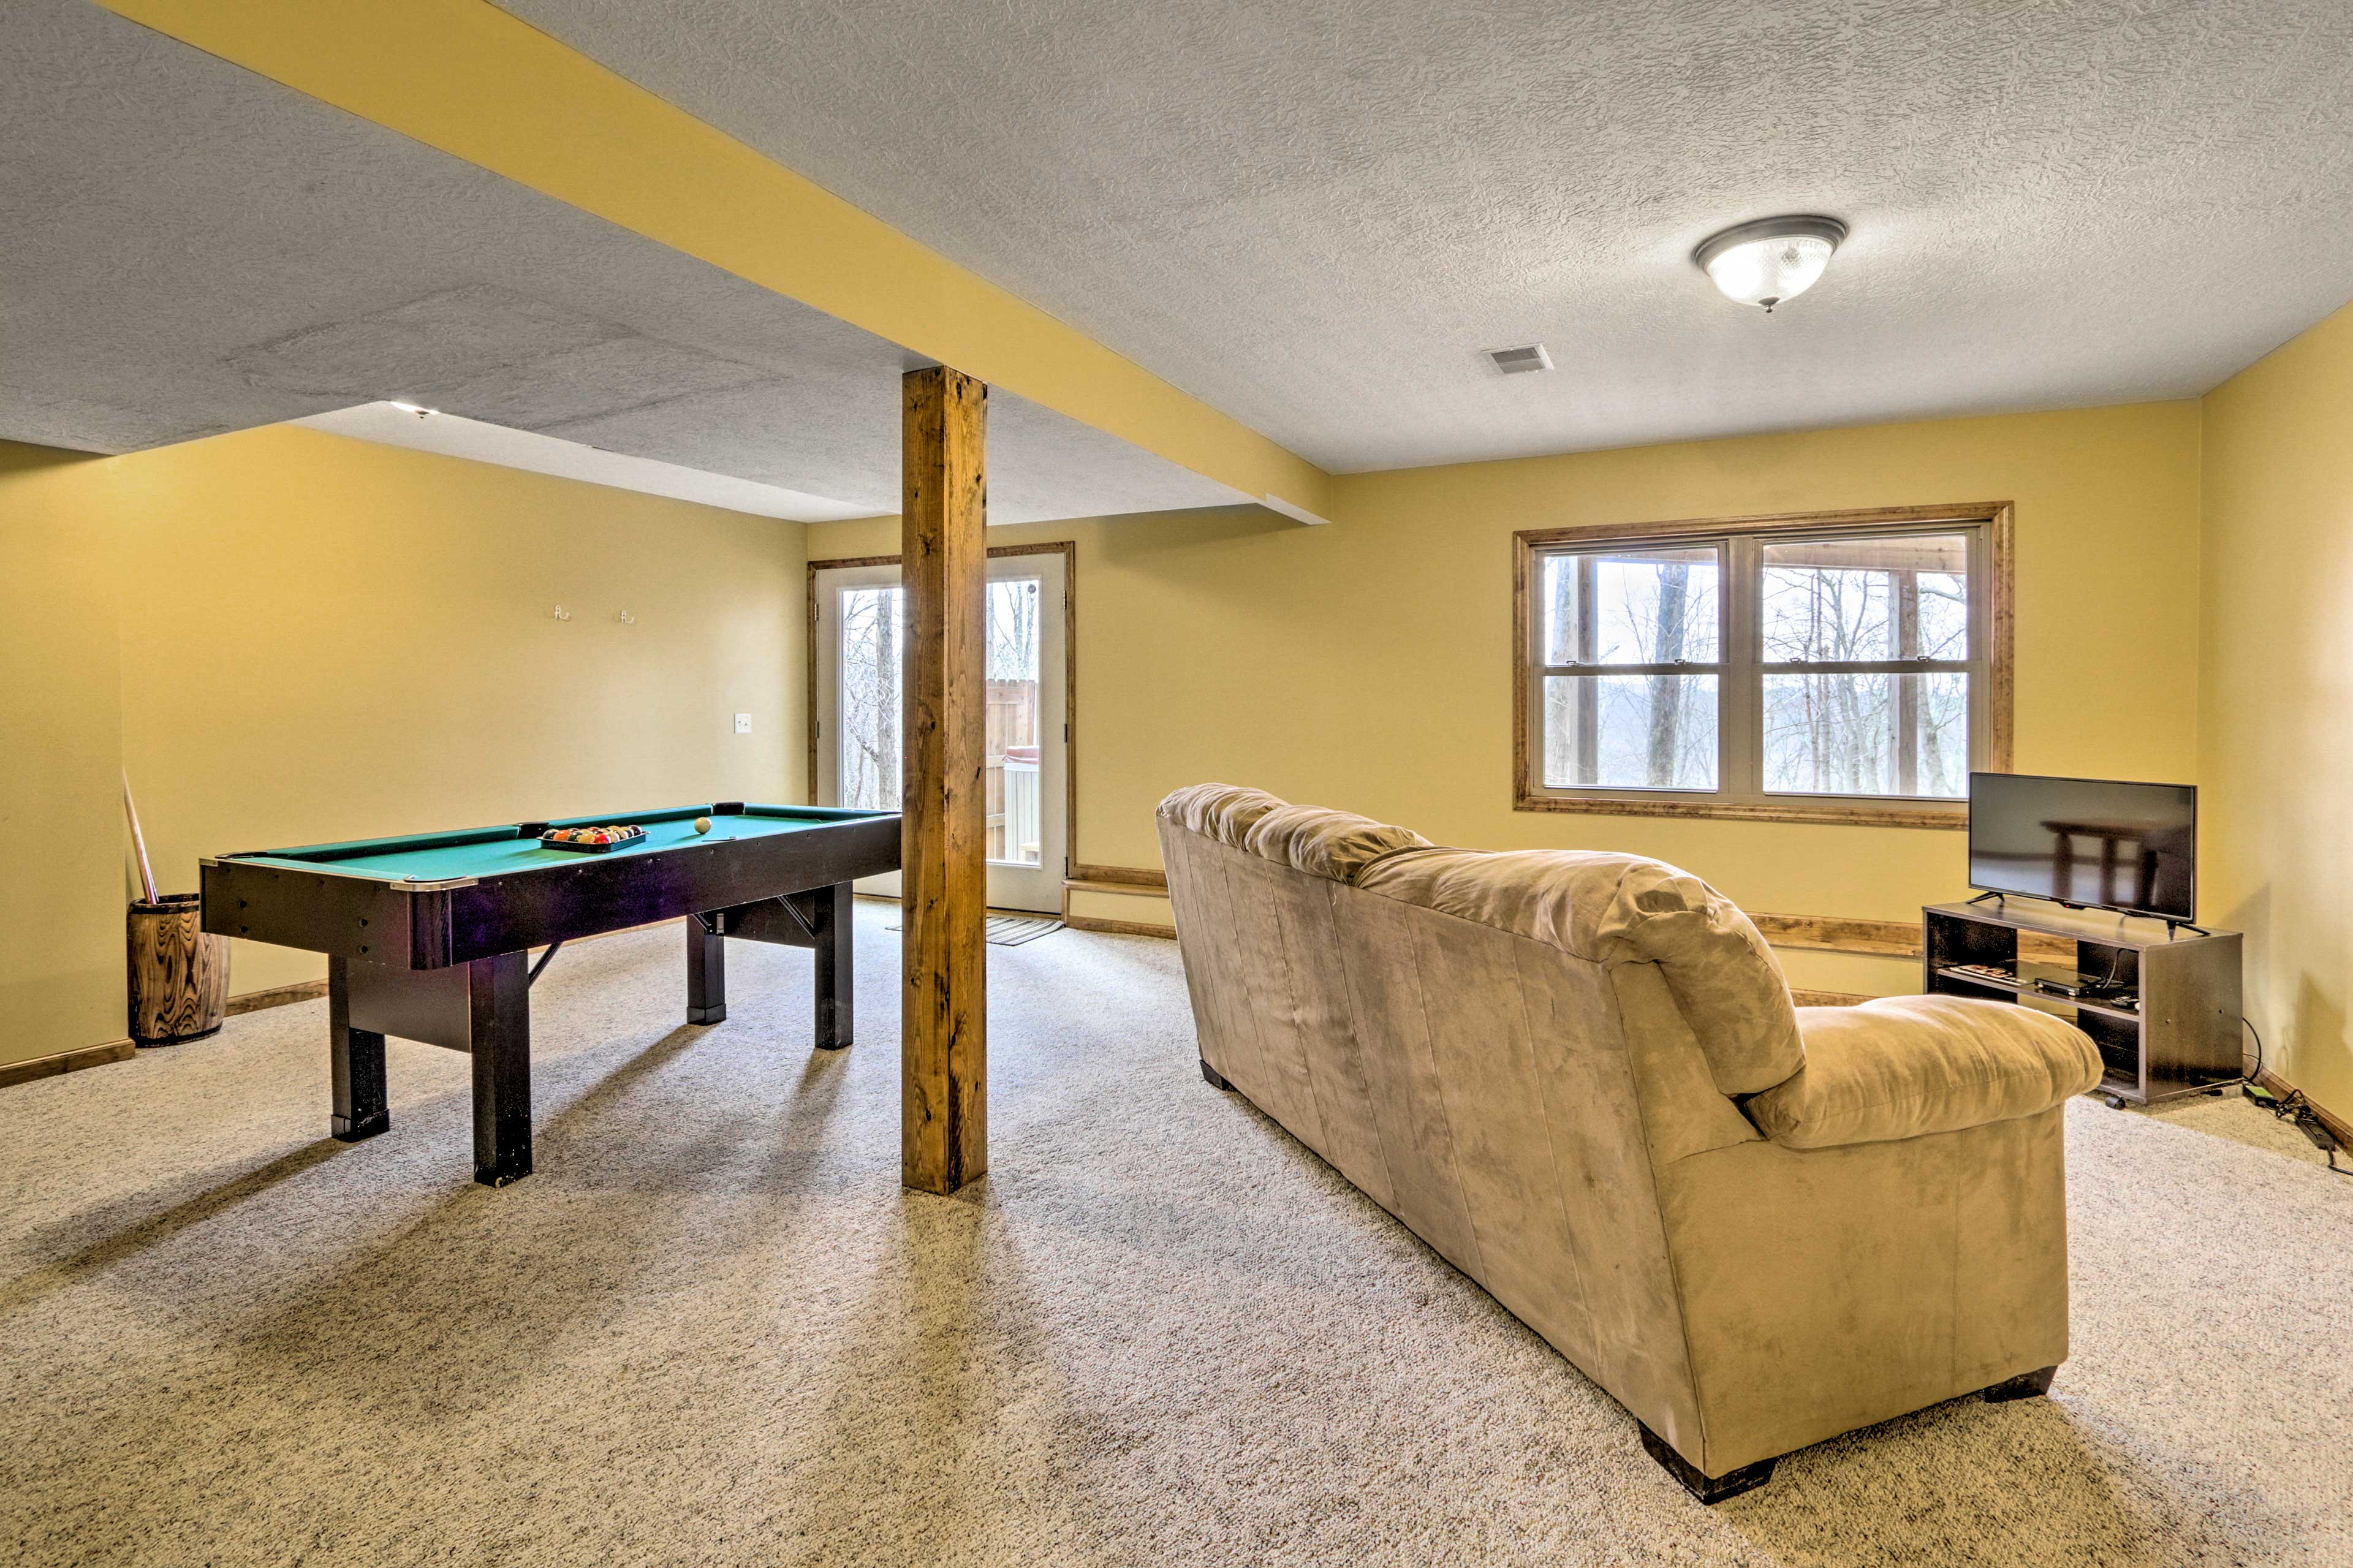 Practice up on your pool game to impress everyone in the house.